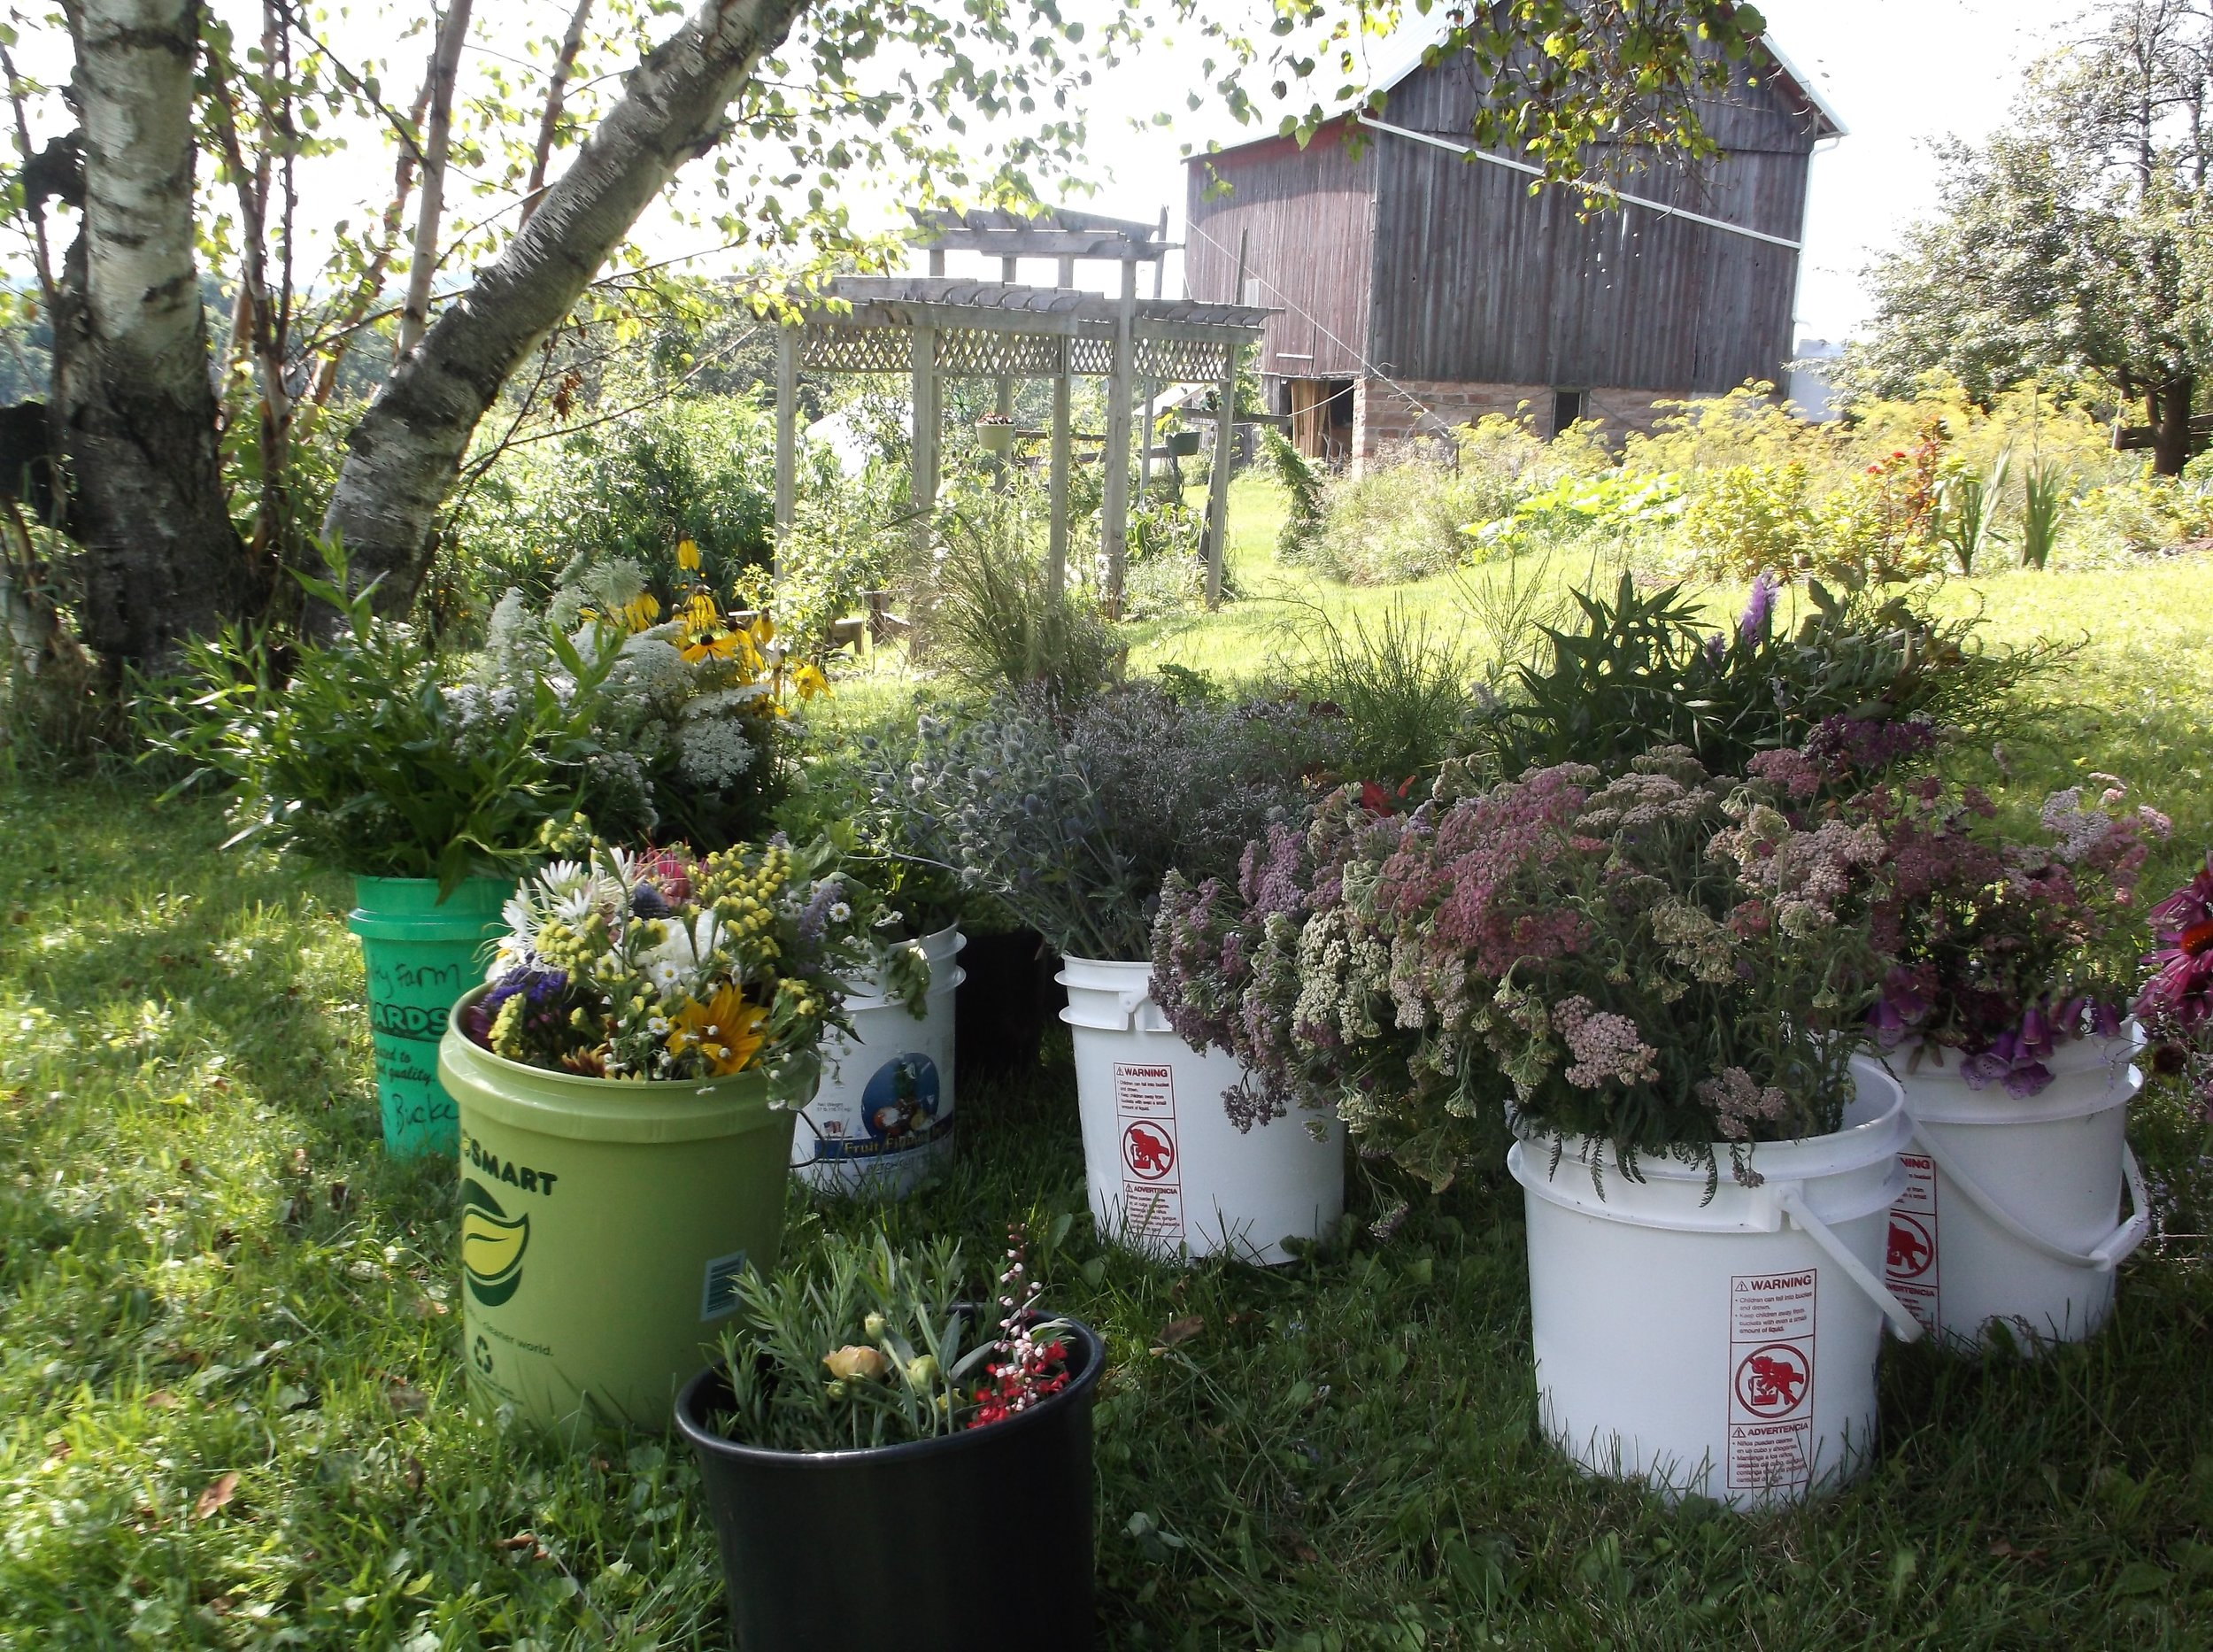 buckets of flowers overflowing and poised for bouquet making. Photo by John Peck